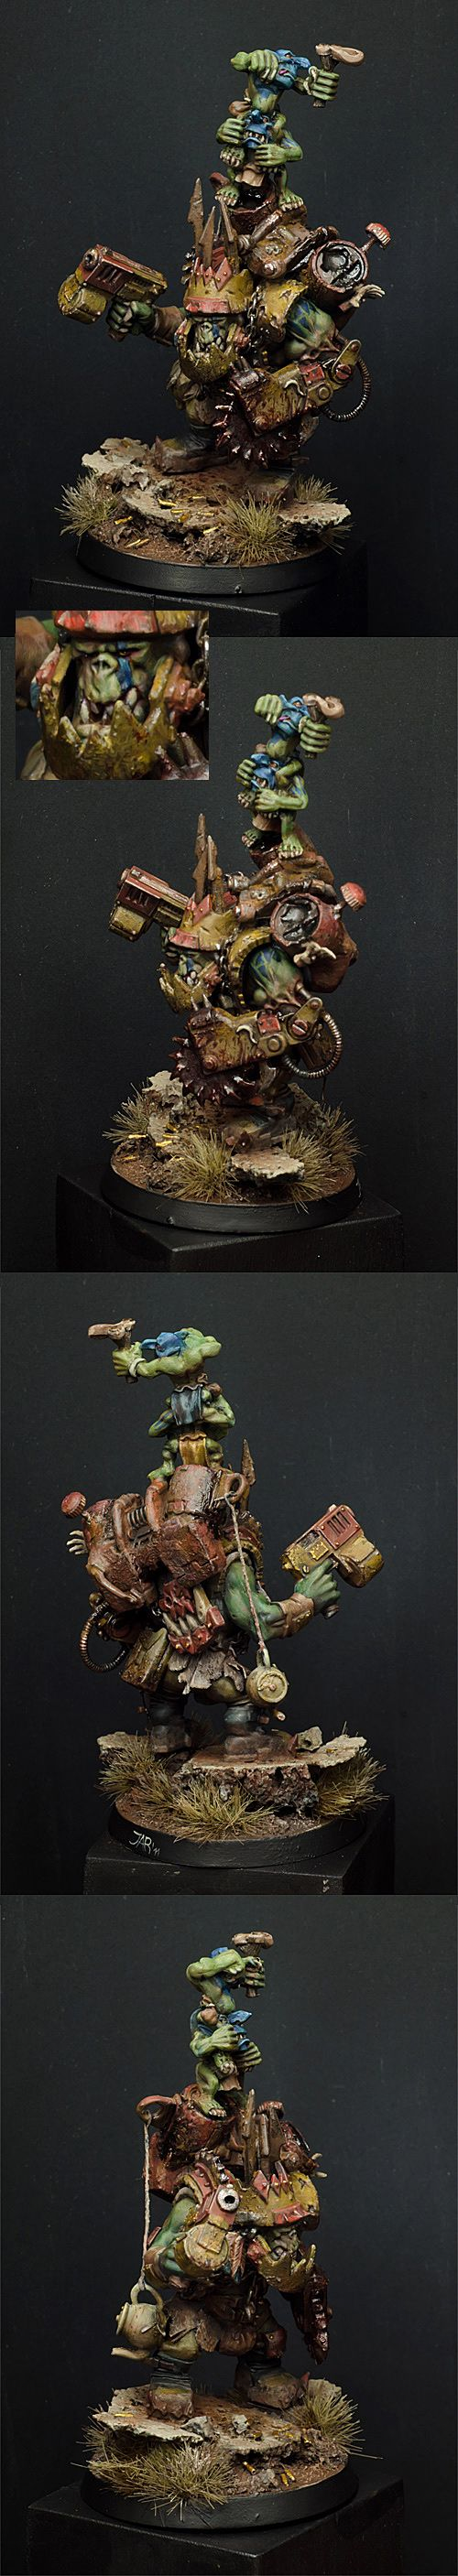 Mad Orc Warboss by MassIveVoodoo